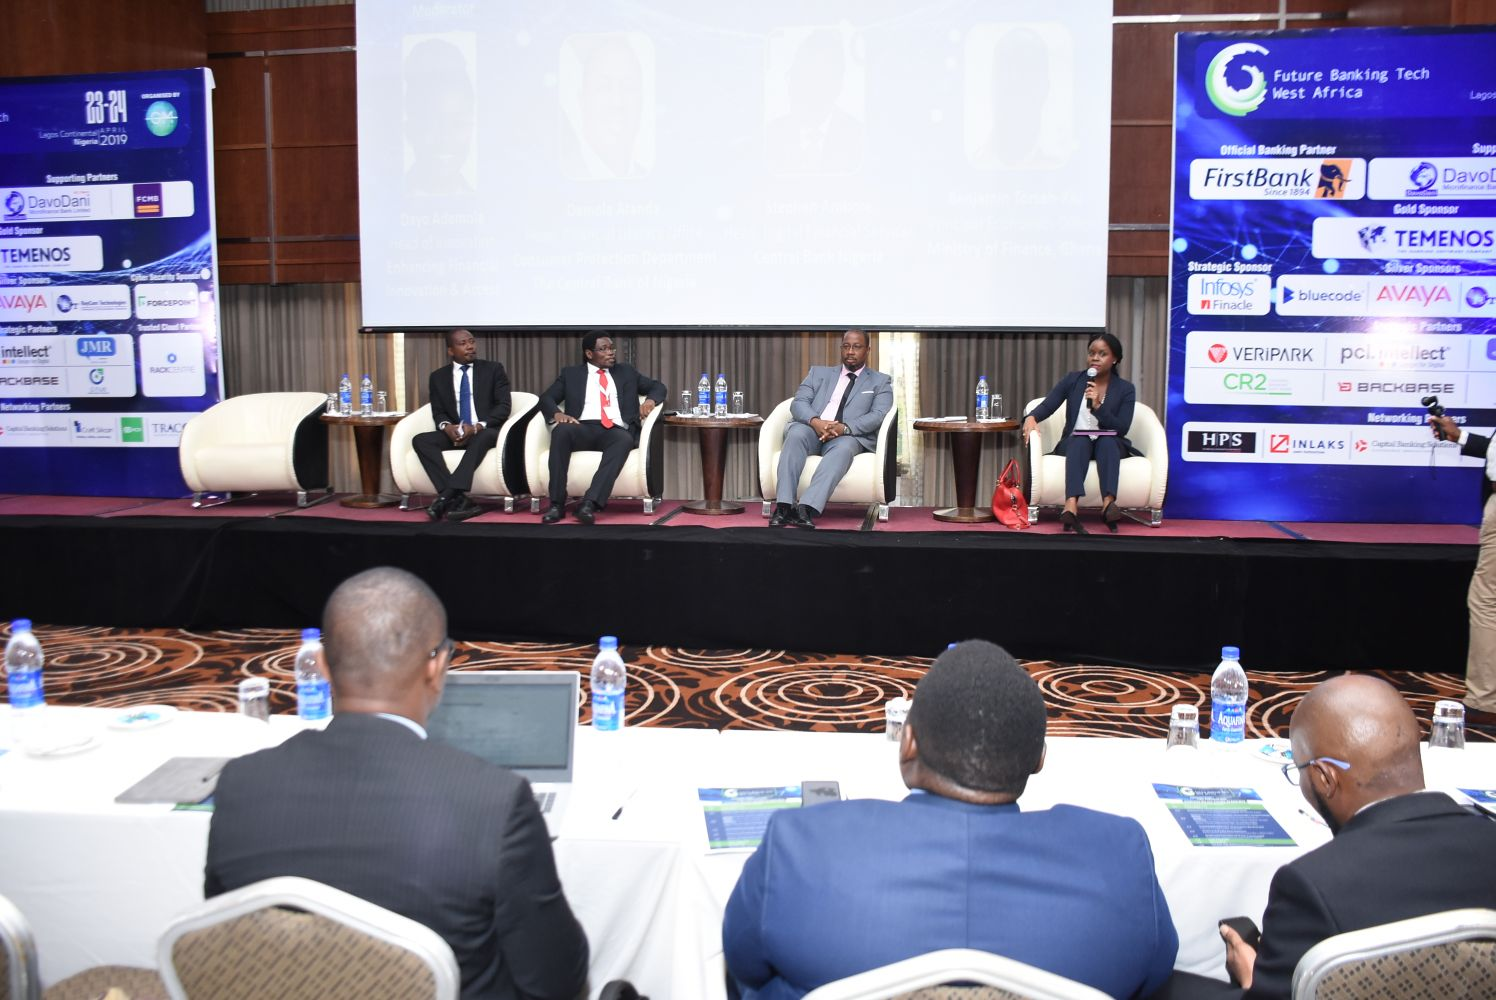 Future Banking West Africa